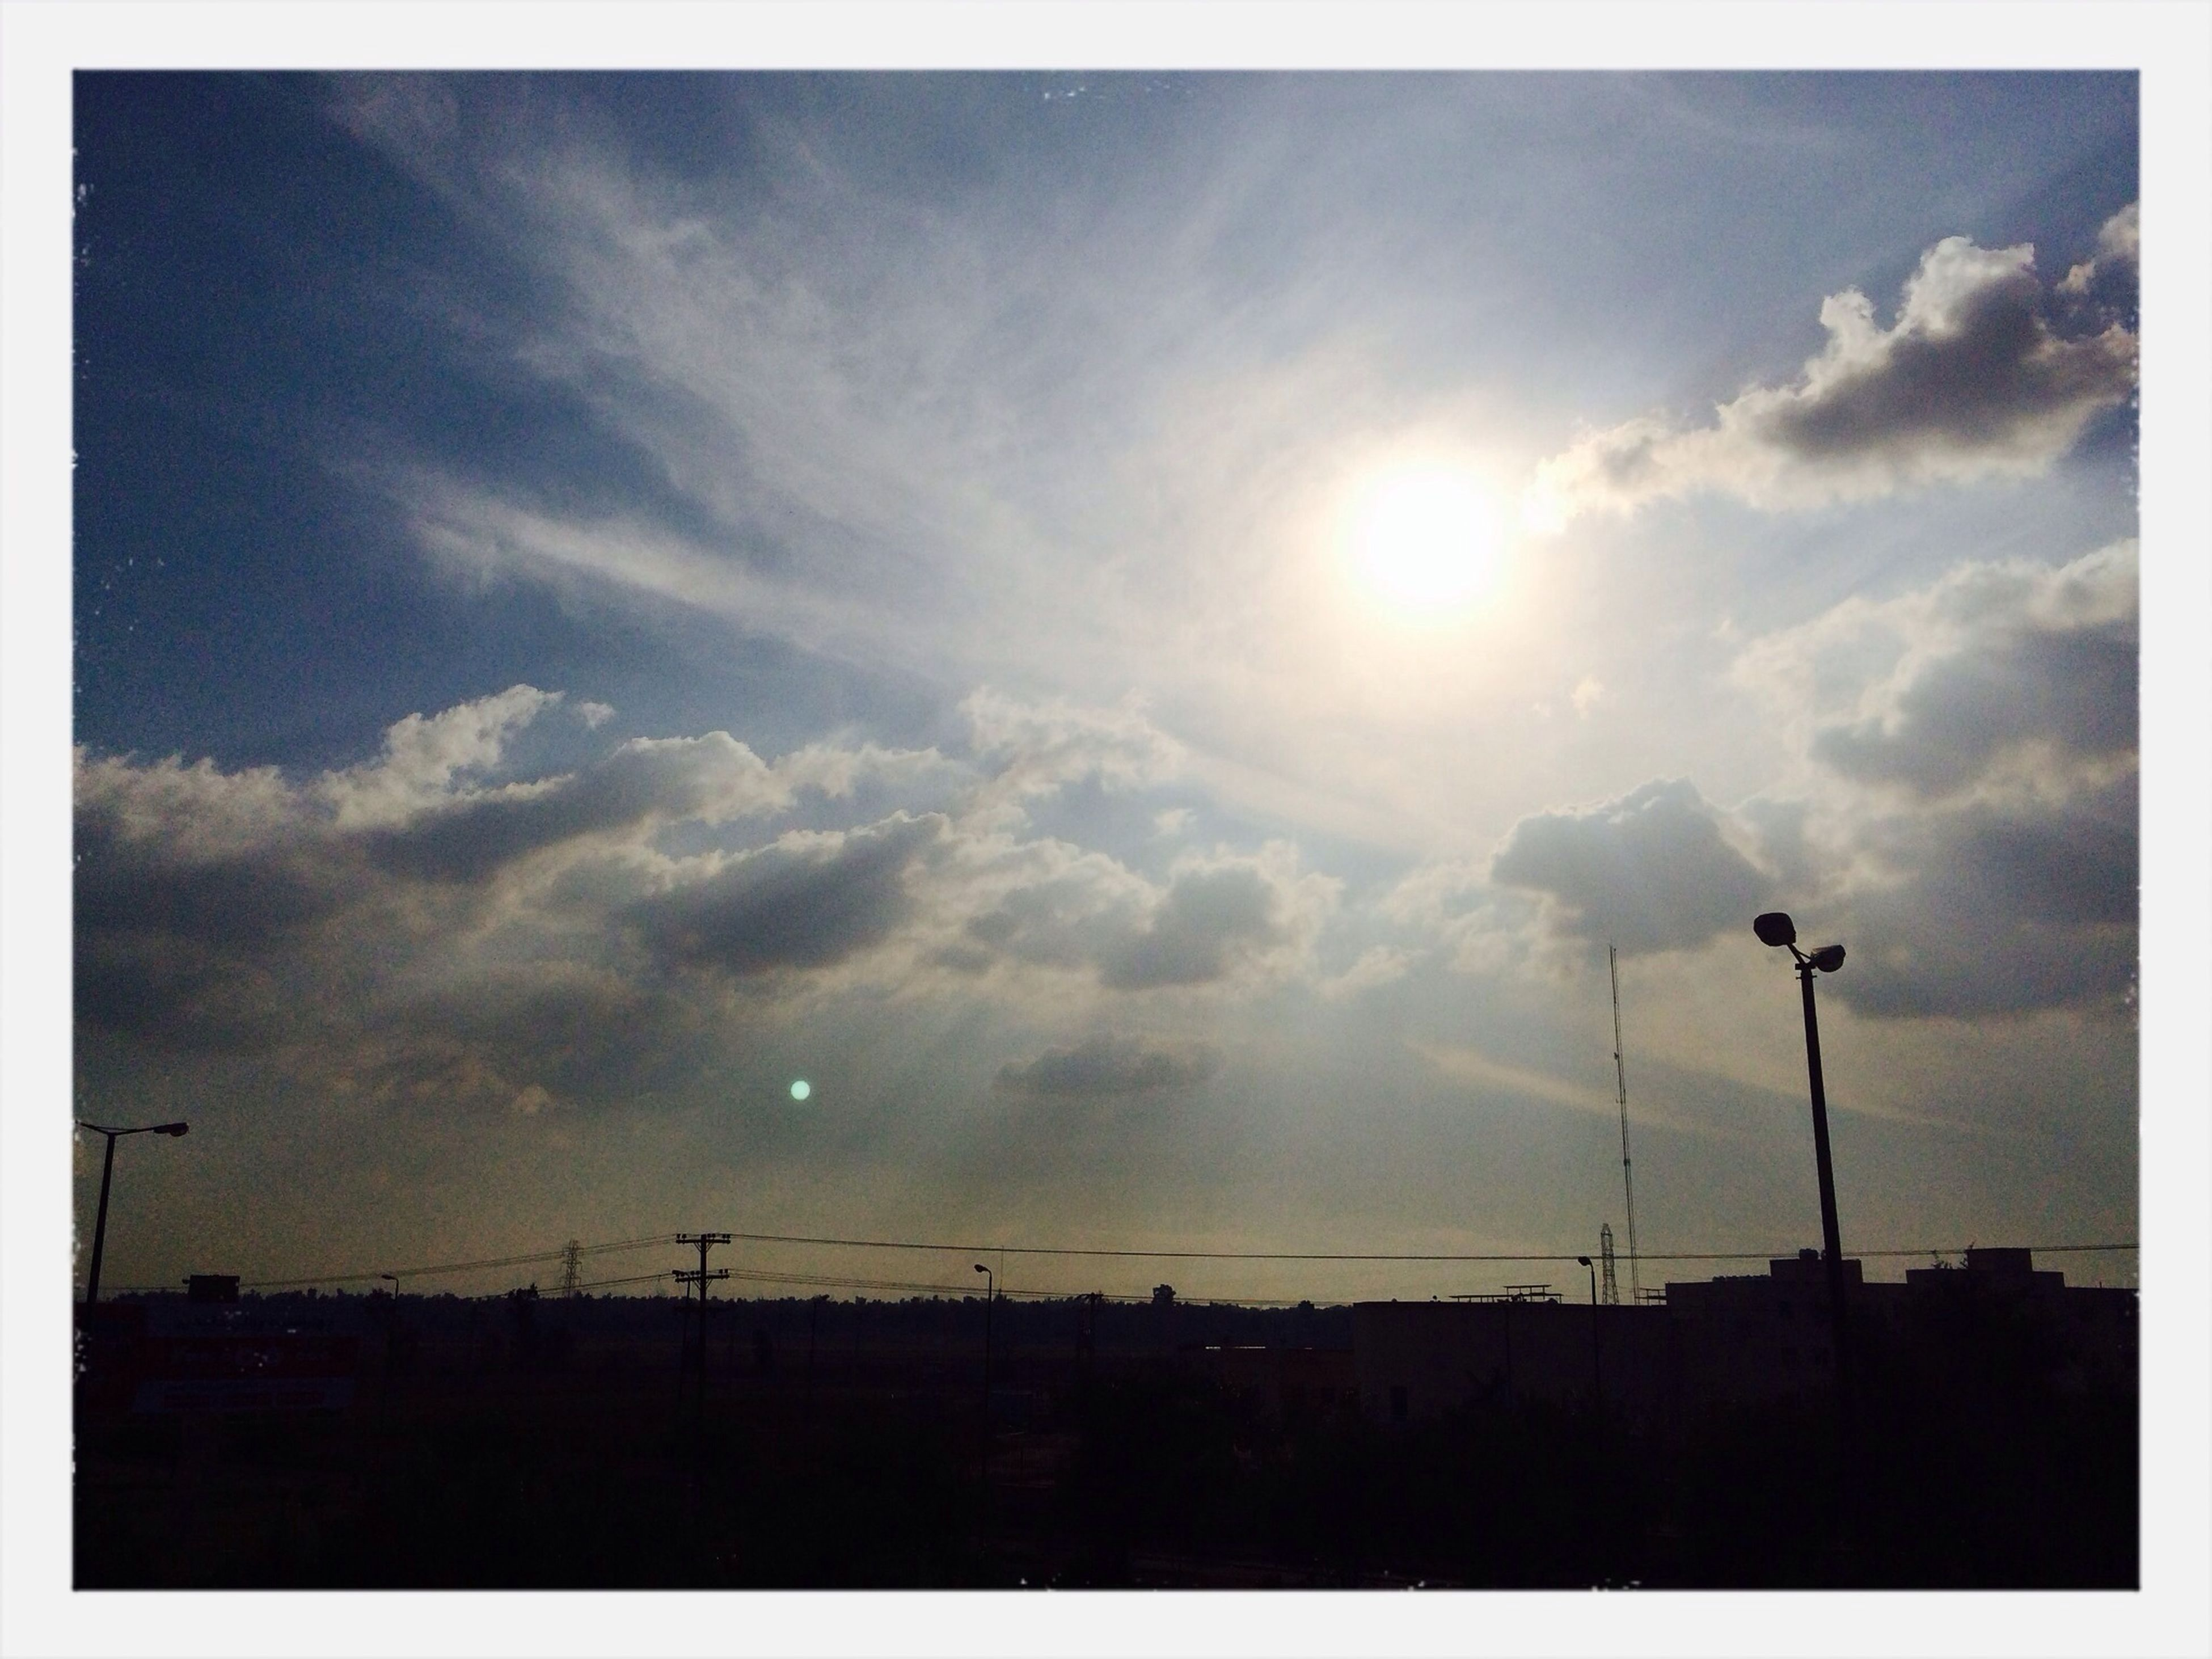 sky, silhouette, transfer print, sun, cloud - sky, sunset, sunbeam, low angle view, sunlight, cloud, cloudy, auto post production filter, beauty in nature, street light, nature, scenics, building exterior, built structure, tranquility, outdoors